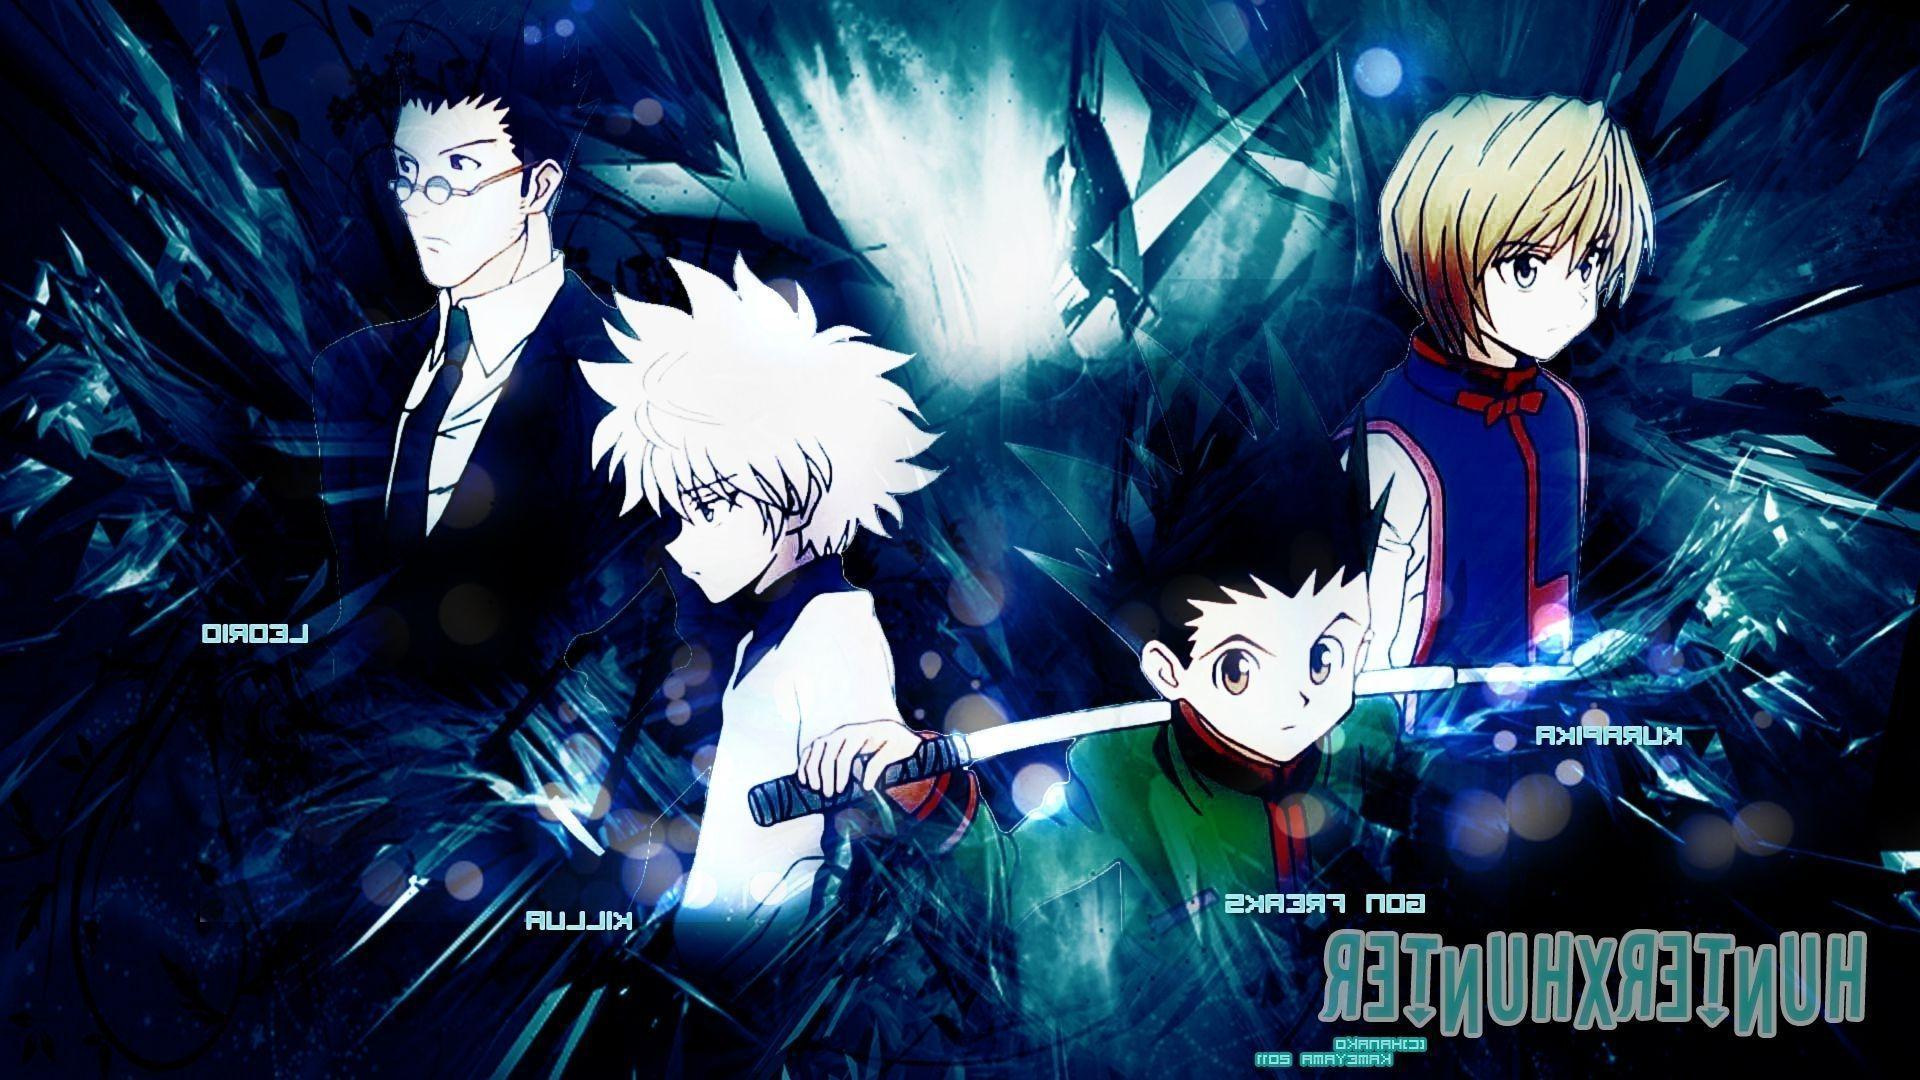 This extension features some of the cool hunter x hunter background to make you feel good on your chrome. Hunter X Hunter Wallpapers - Wallpaper Cave